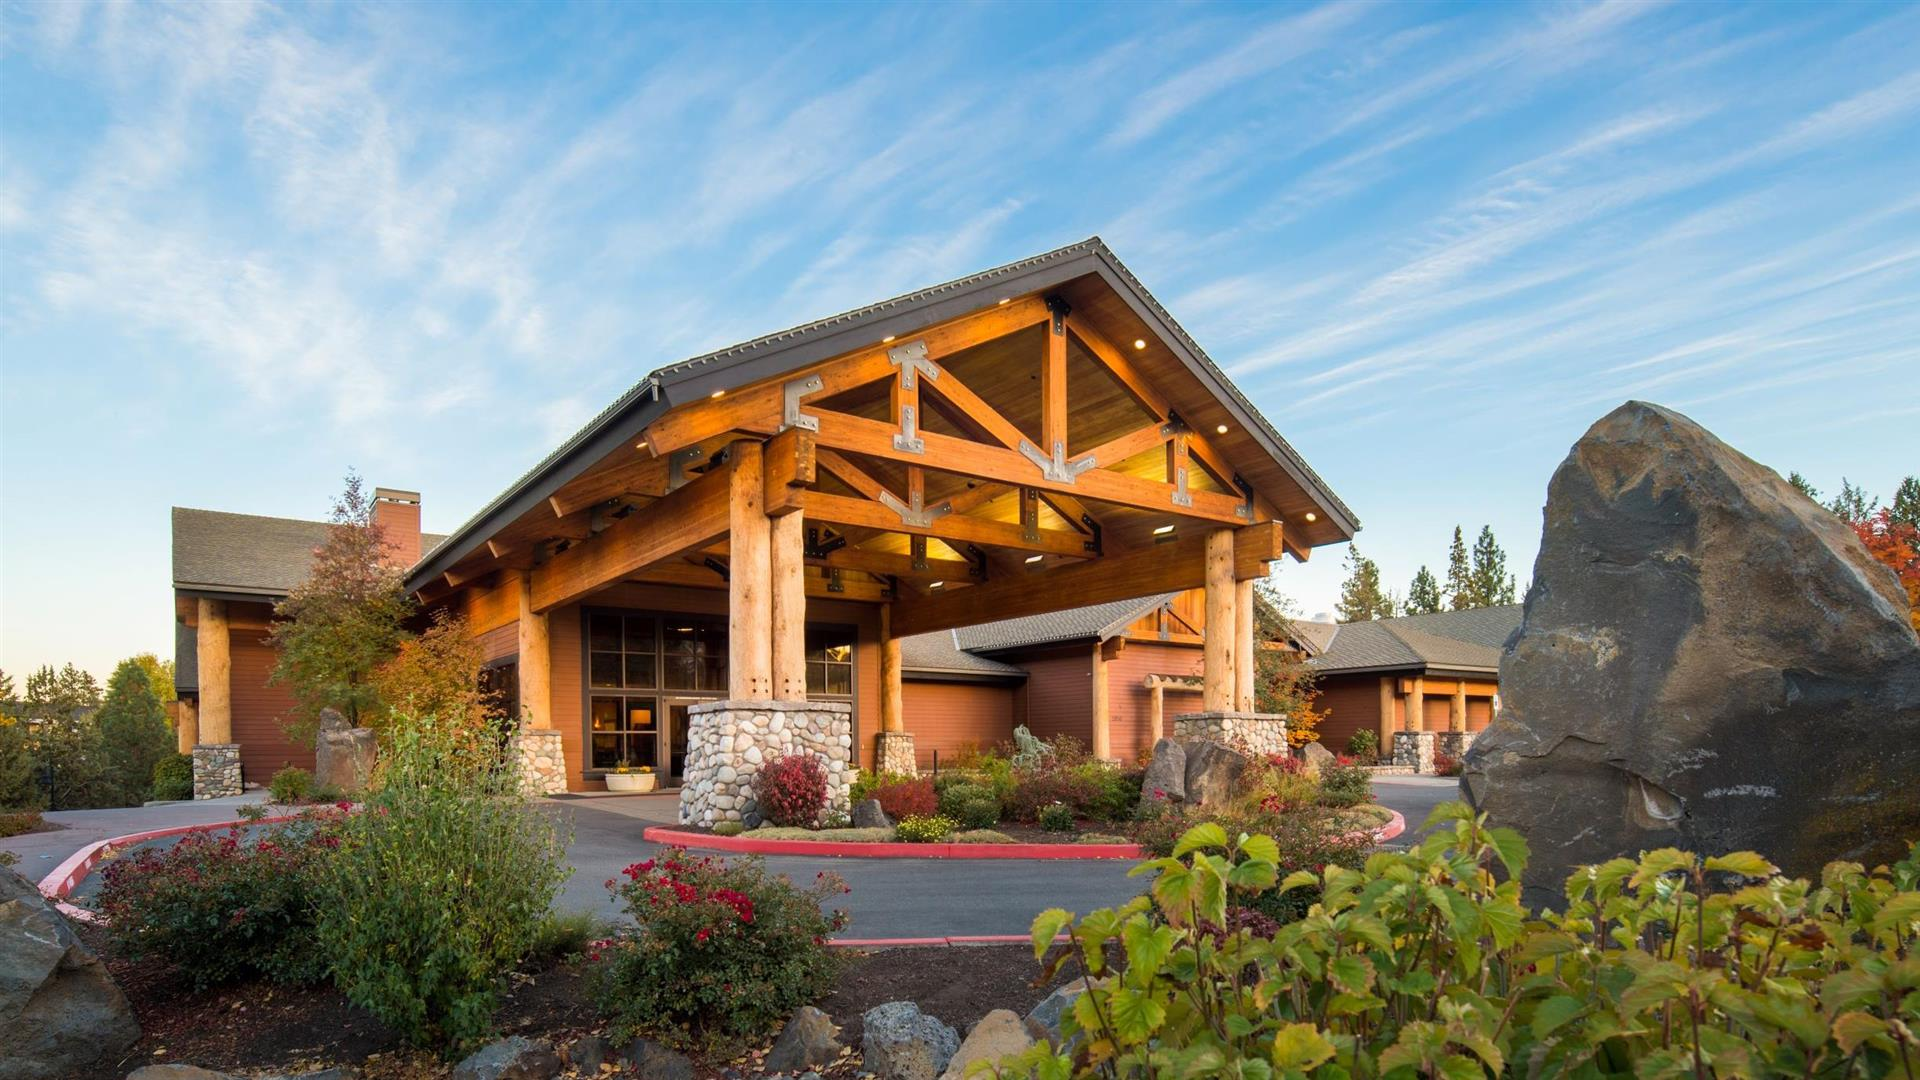 Meetings and events at The Riverhouse on the Deschutes, Bend, OR, US